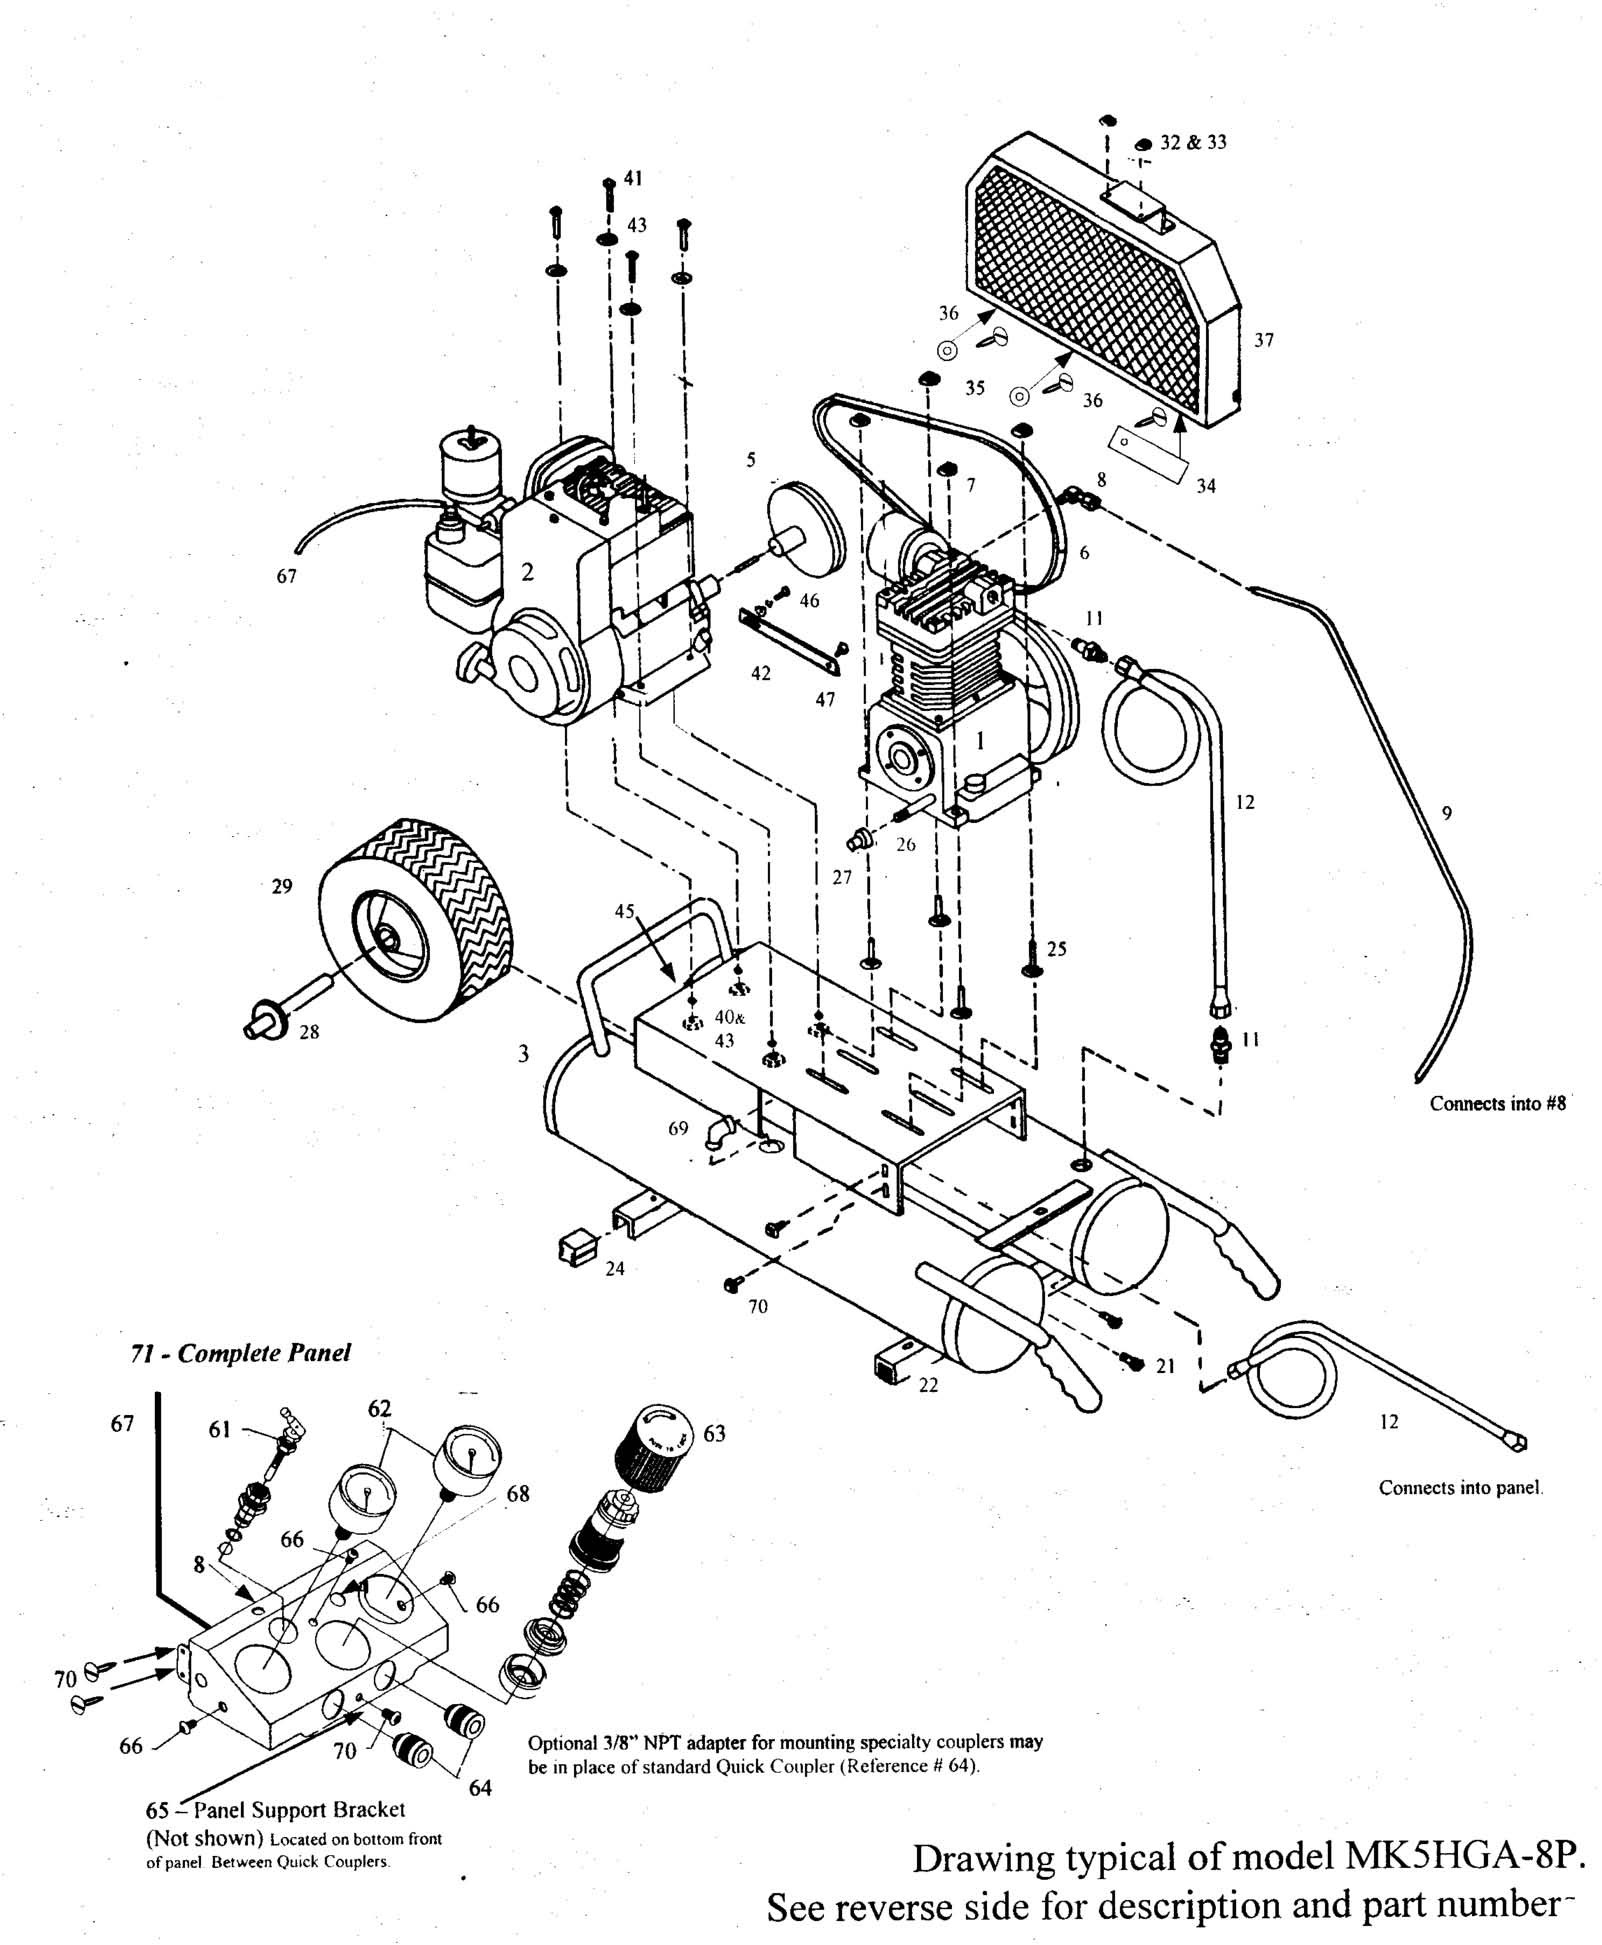 Honda Gx120 Parts Diagram Emglo Mk5hga 8p Air Pressor Parts Of Honda Gx120 Parts Diagram